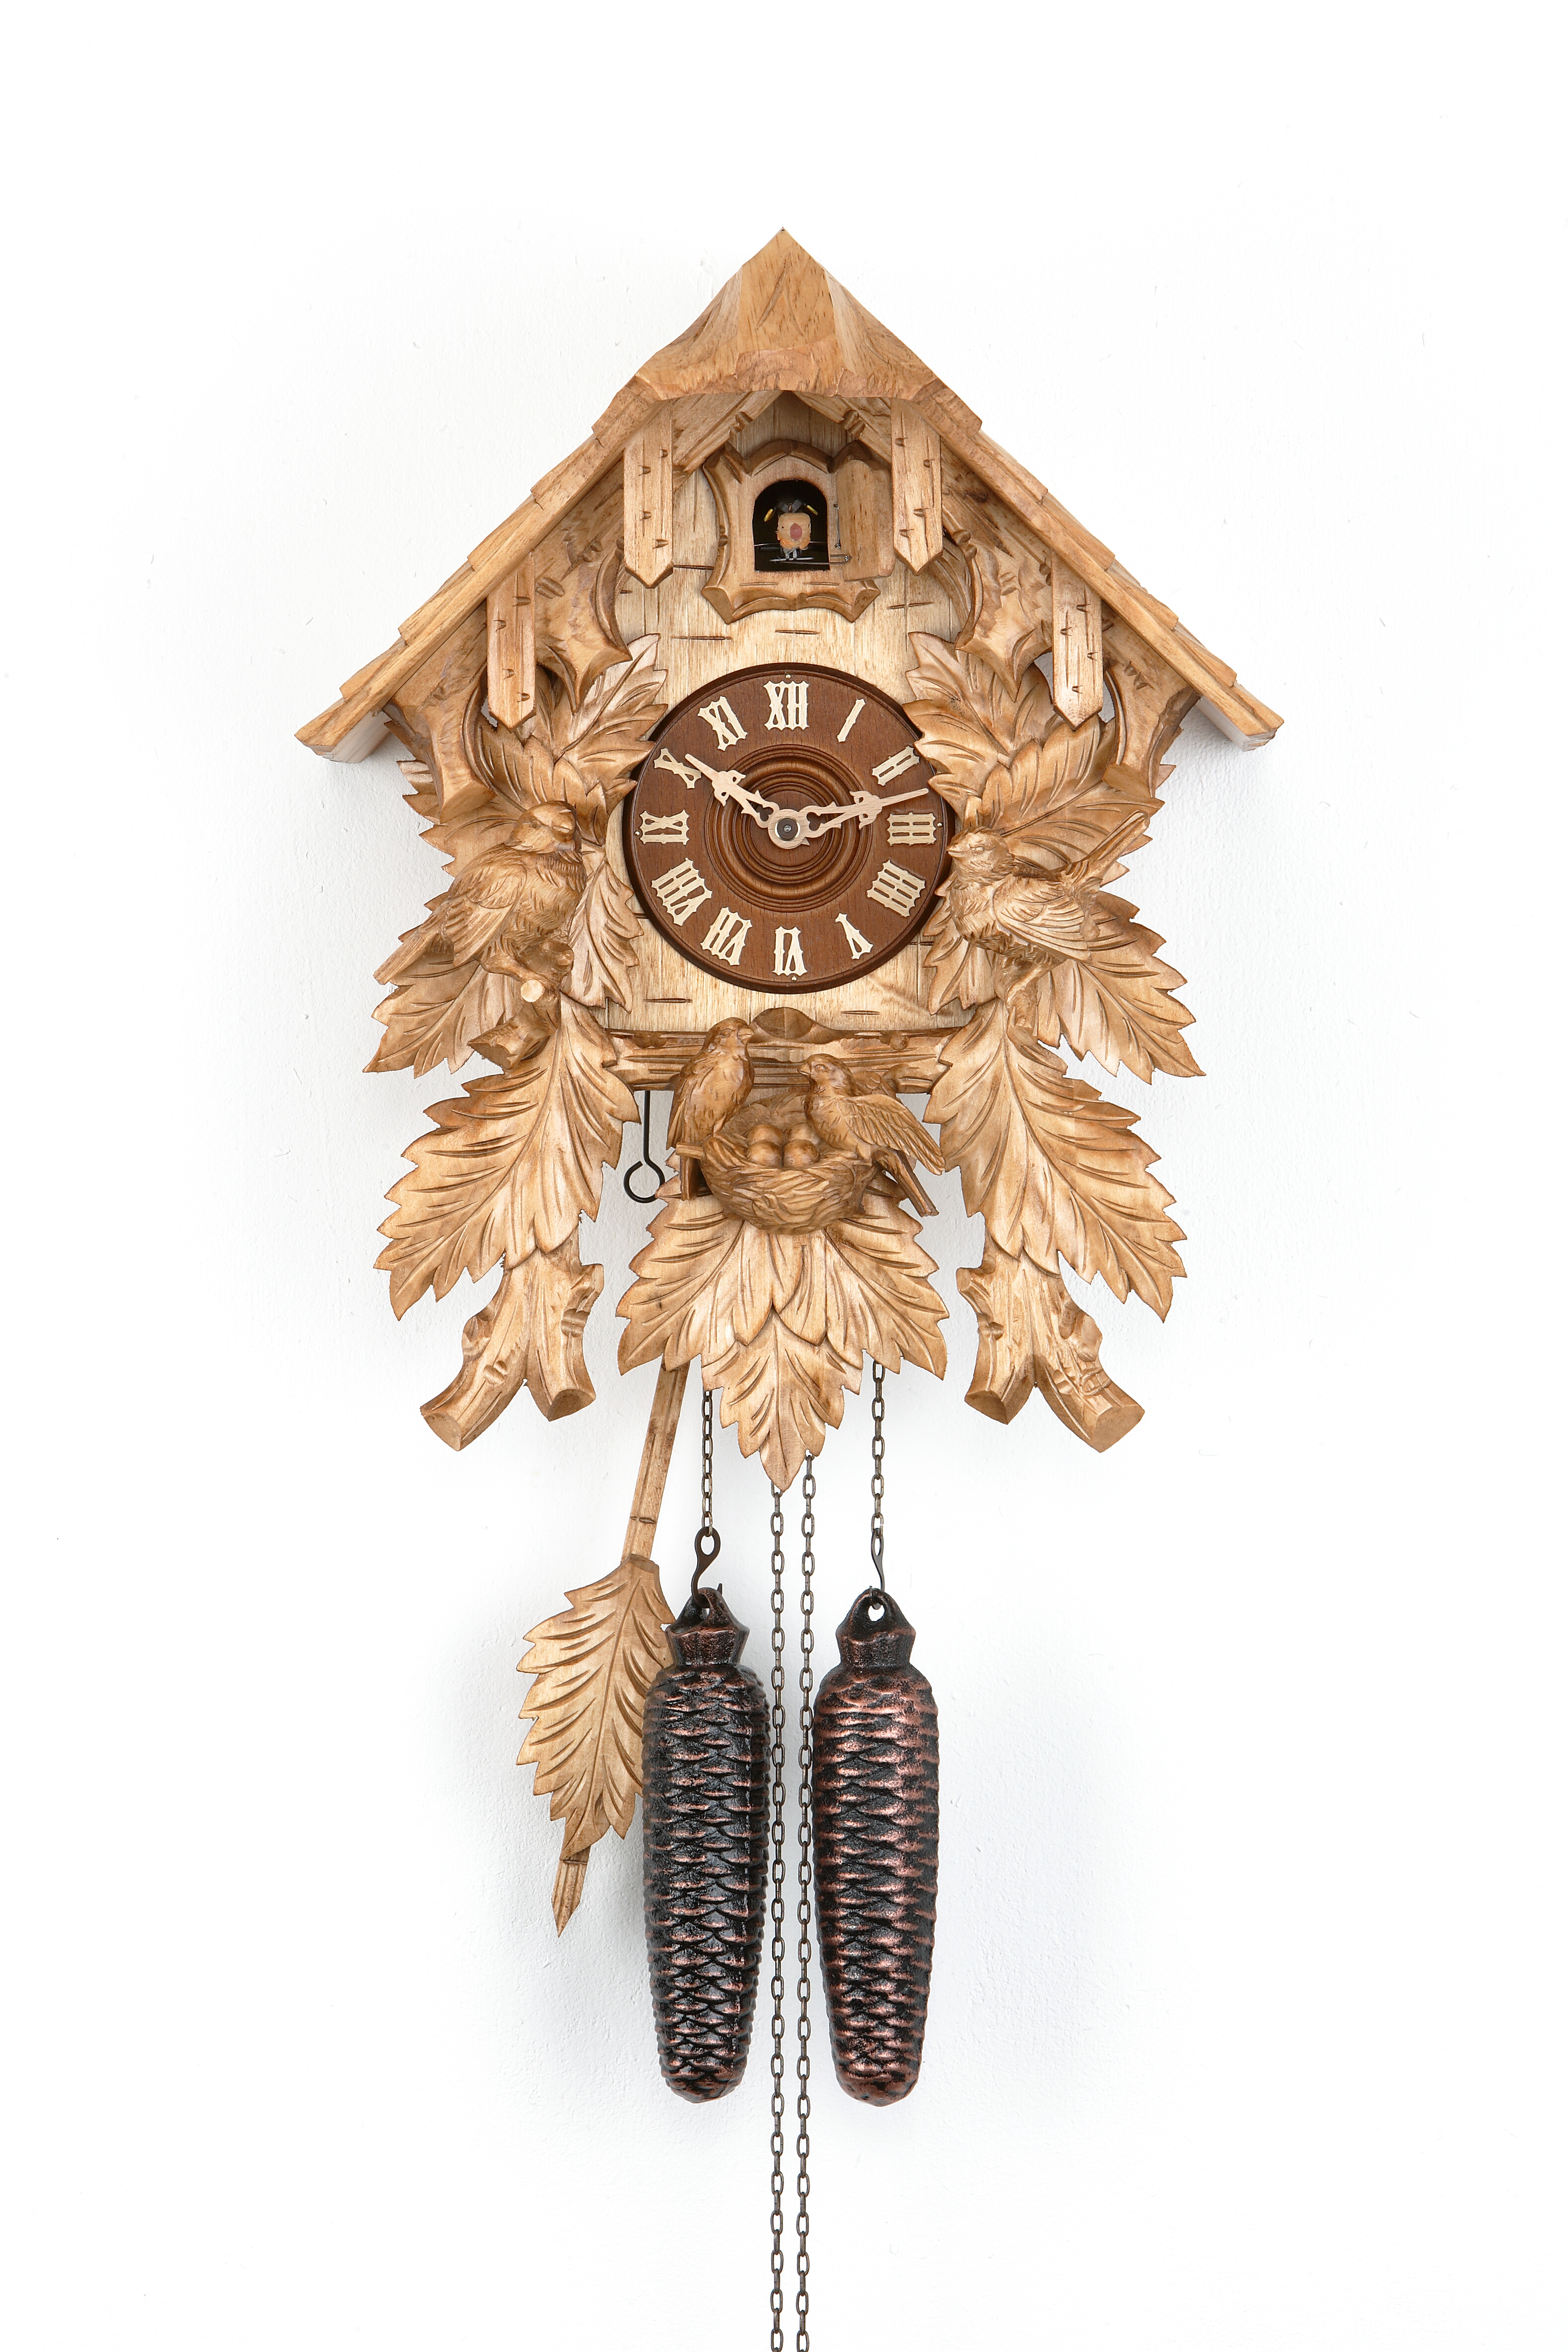 8 Days Cuckoo Clock Black Forest House with bird family